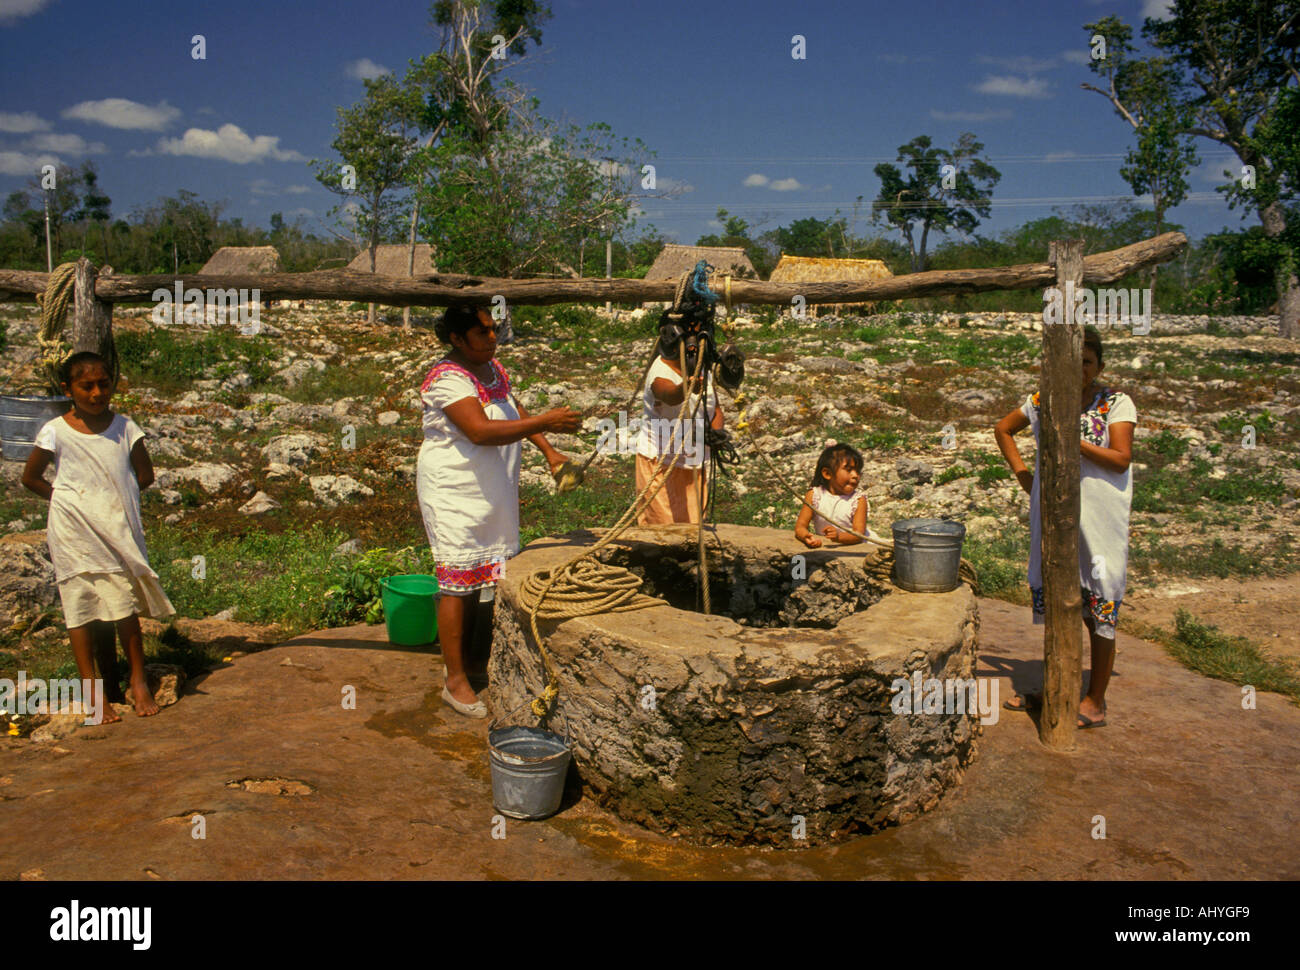 Mexican people, Mayan people, drawing water from well in the village of Palacio Gomez in Quintana Roo State in Yucatan Stock Photo